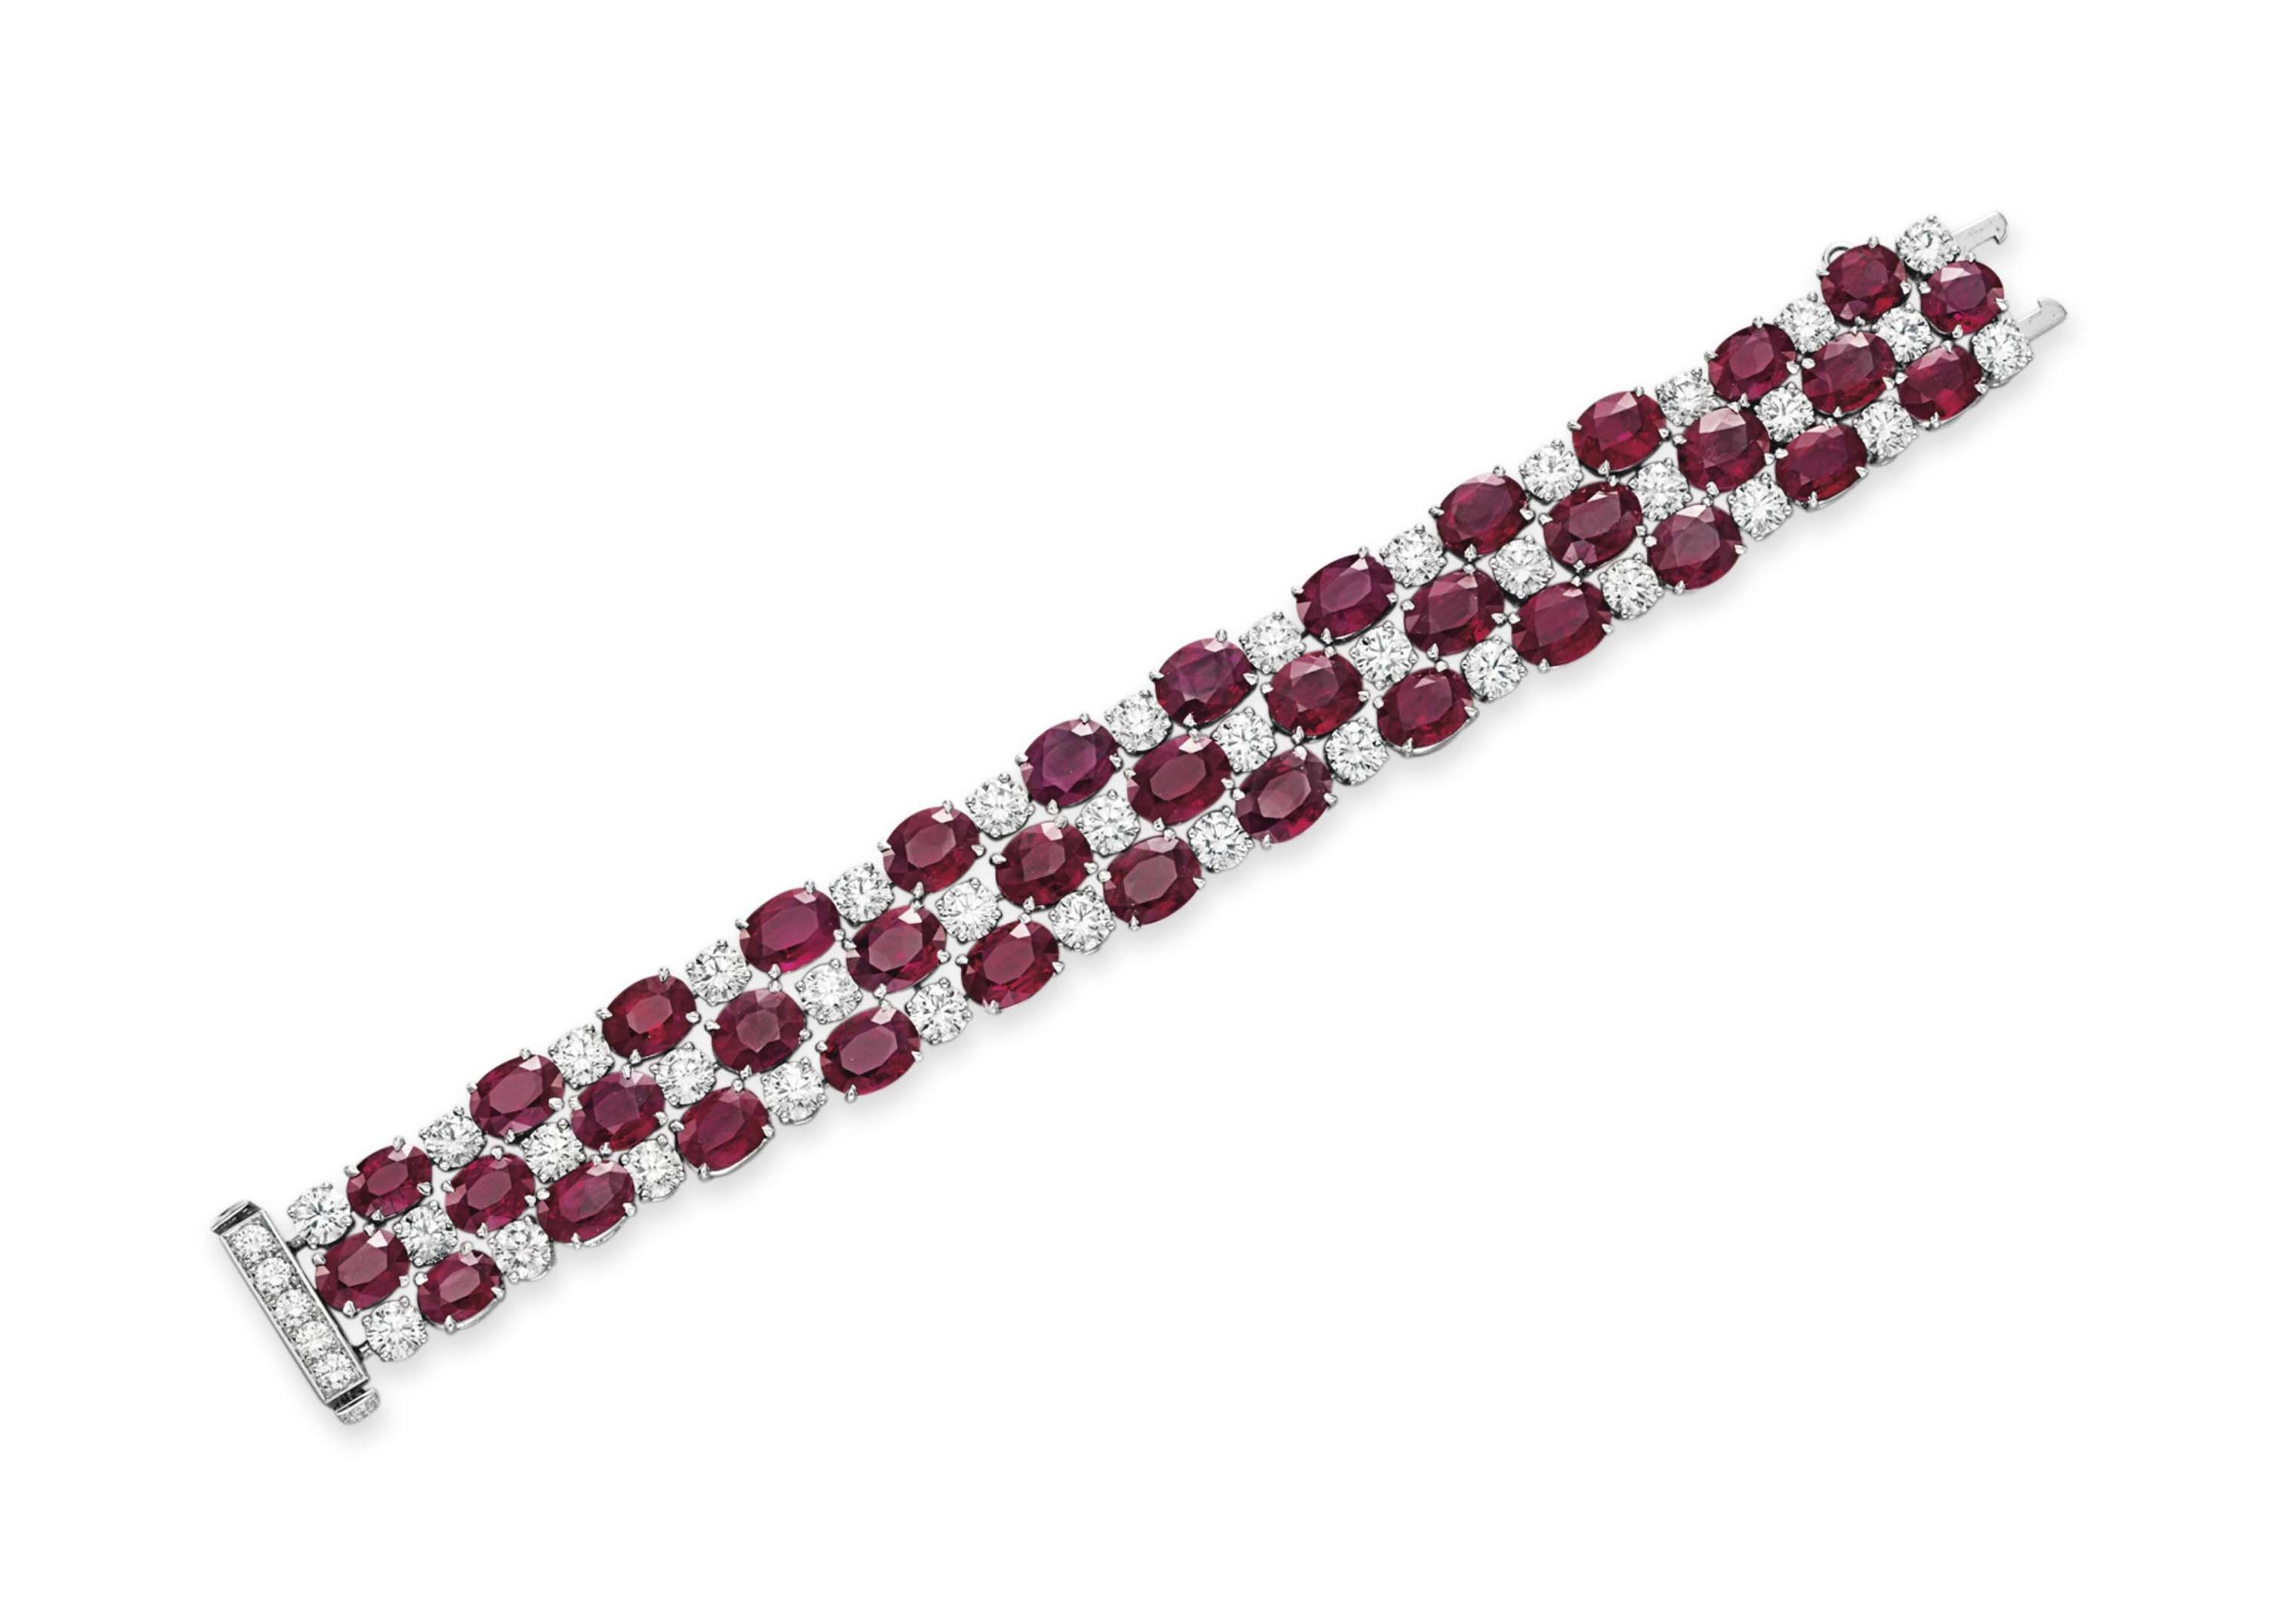 A RUBY AND DIAMOND BRACELET, BY CHOPARD